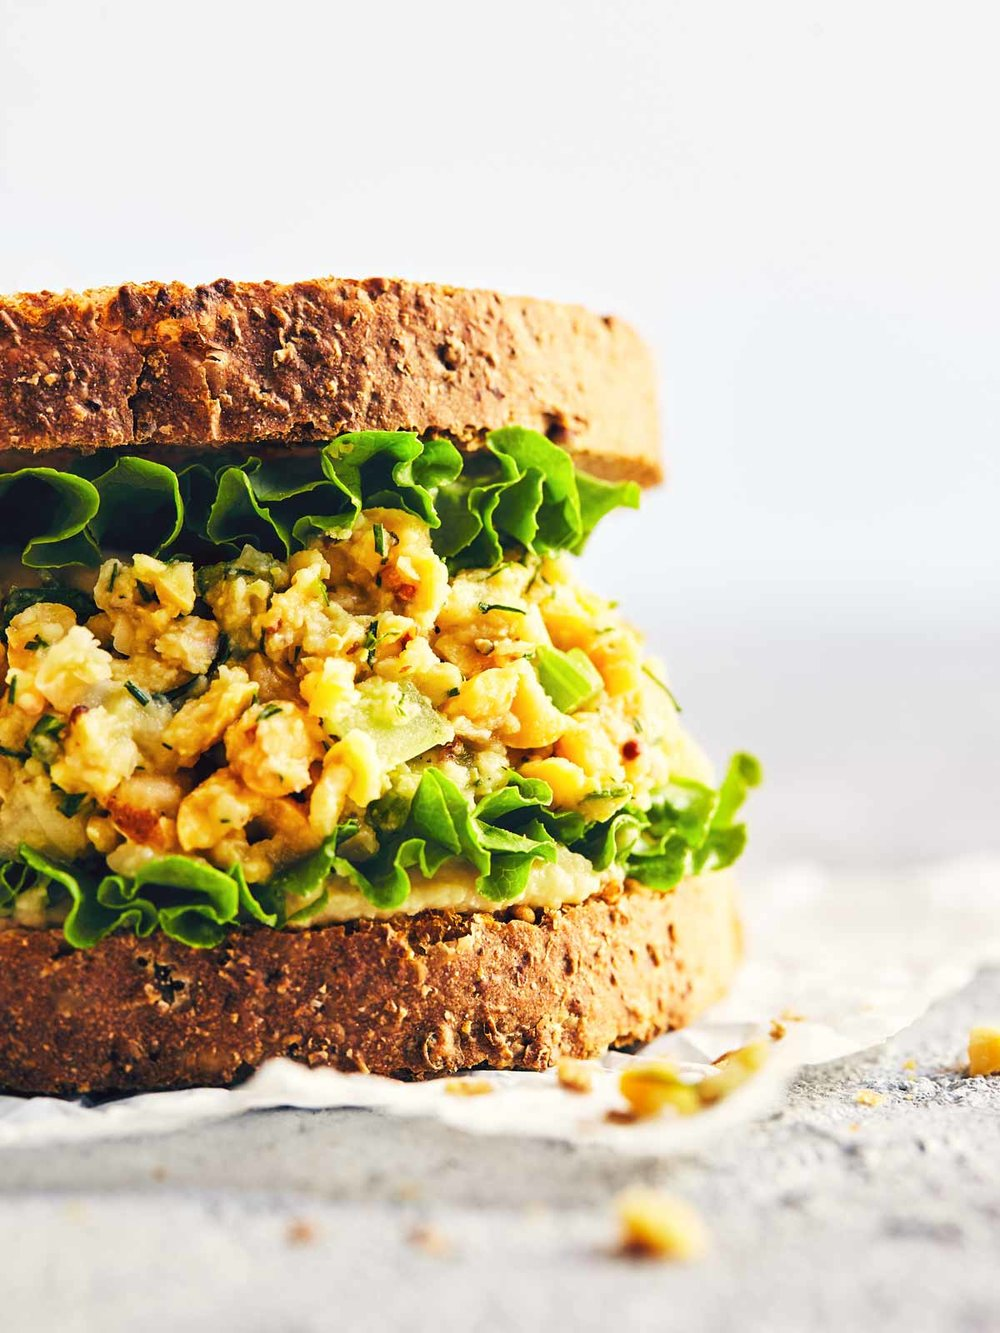 Lemon & Dill Chickpea Sandwich | Evergreen Kitchen | Vegan